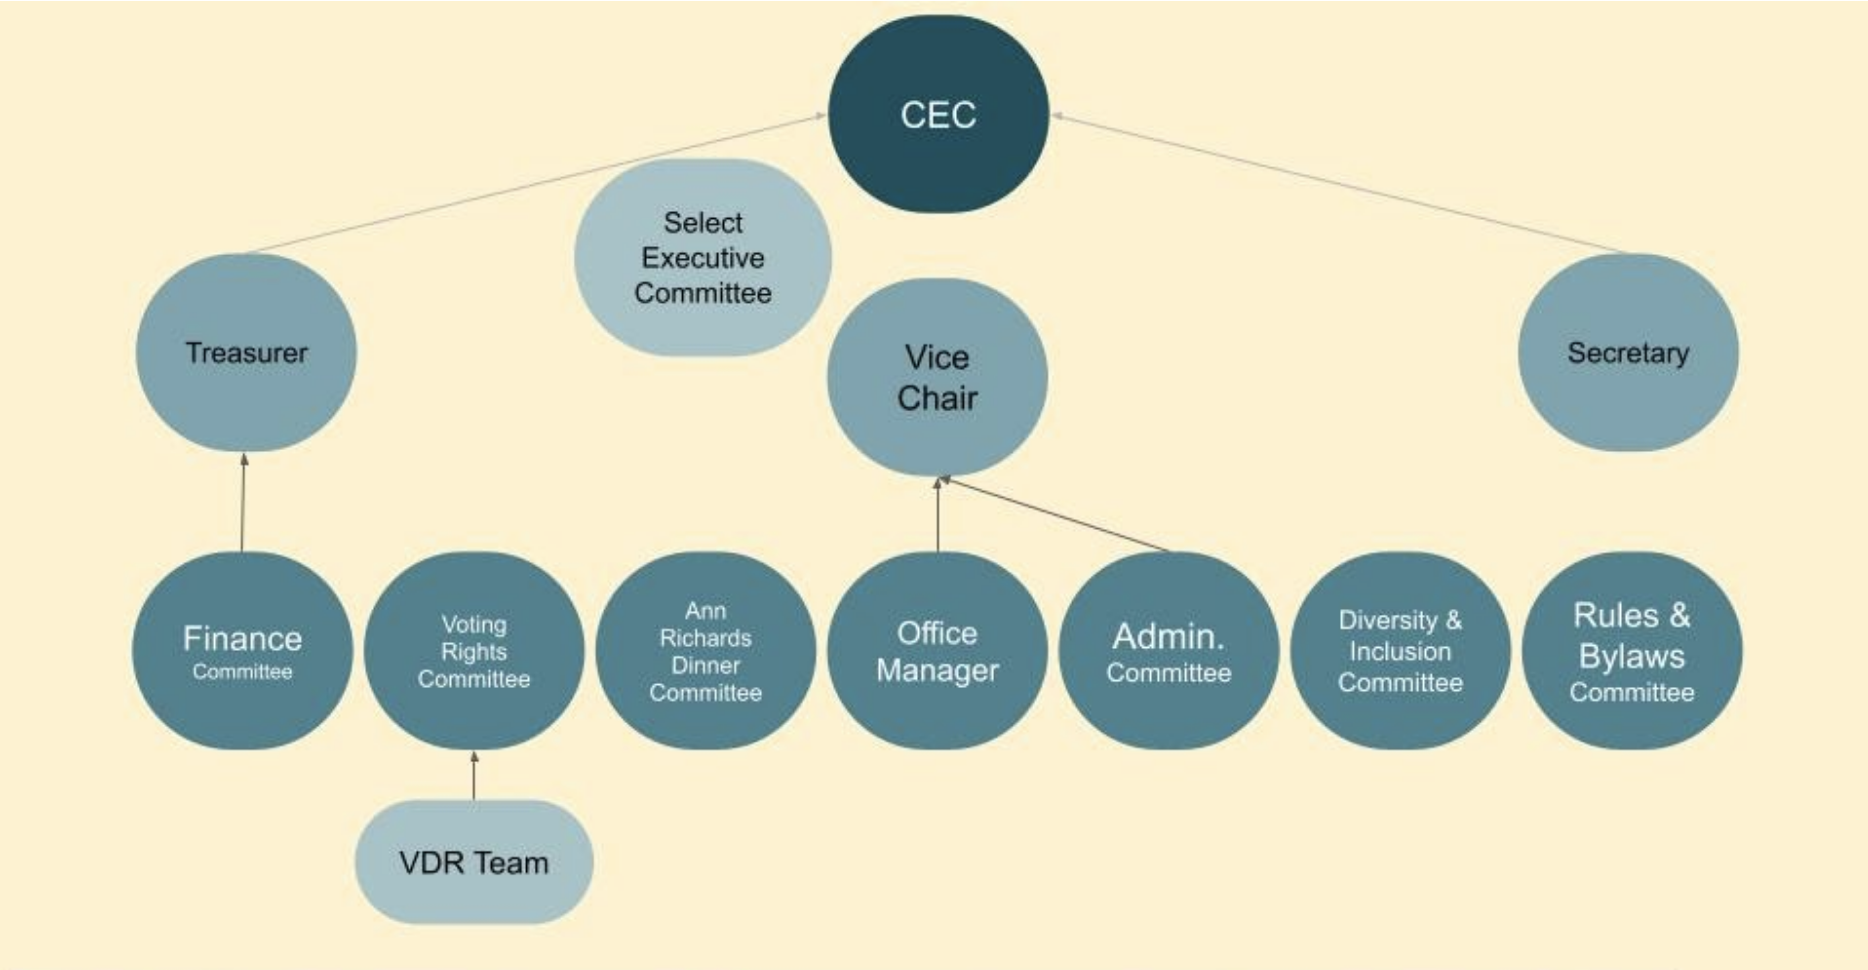 Organization Chart Showing CCDP Administrative and Governance Committees